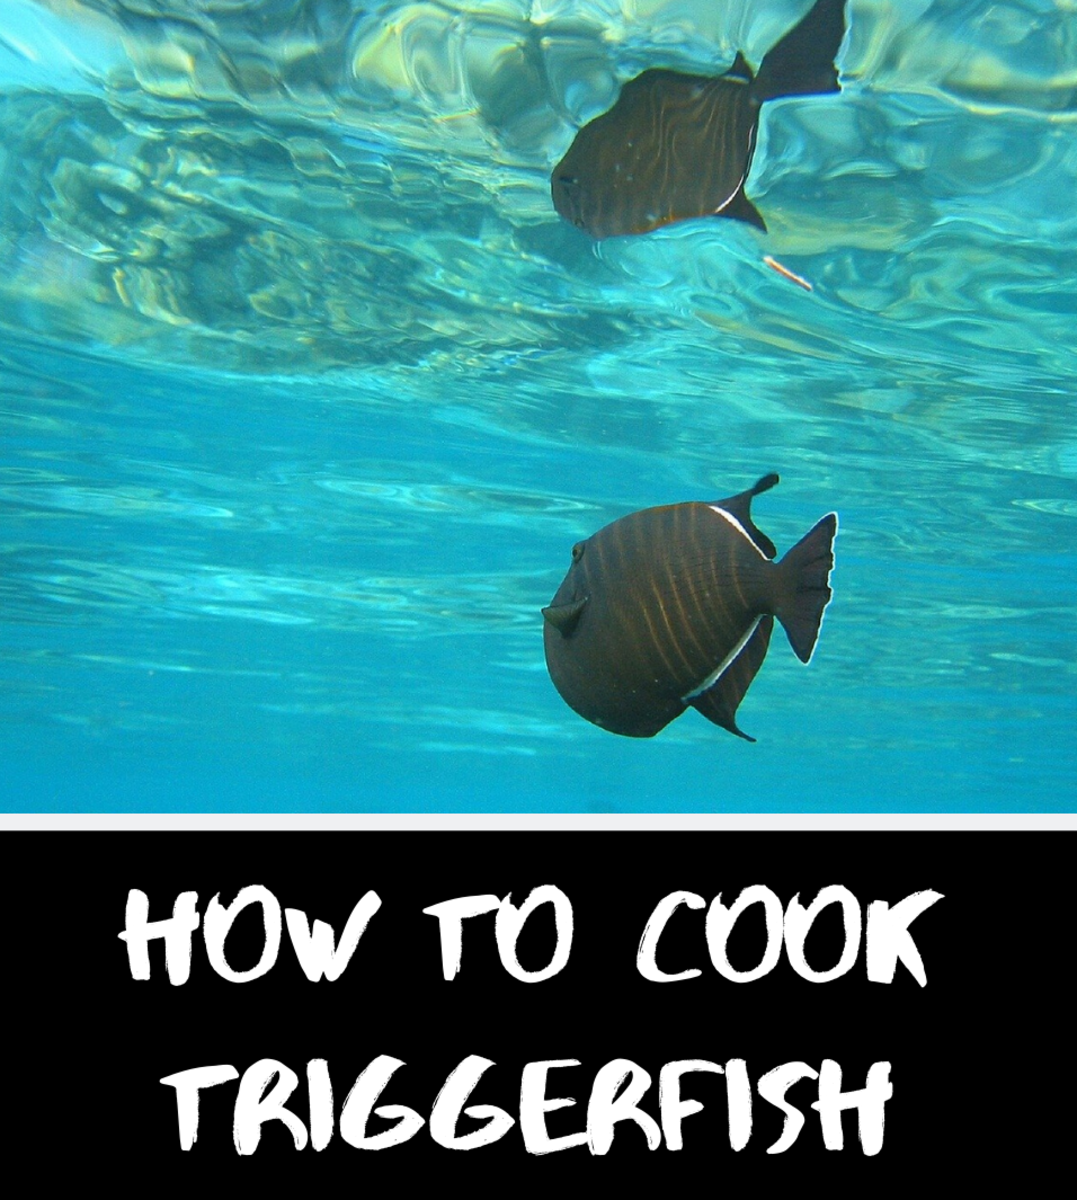 How to Cook Triggerfish on the Grill or in the Oven